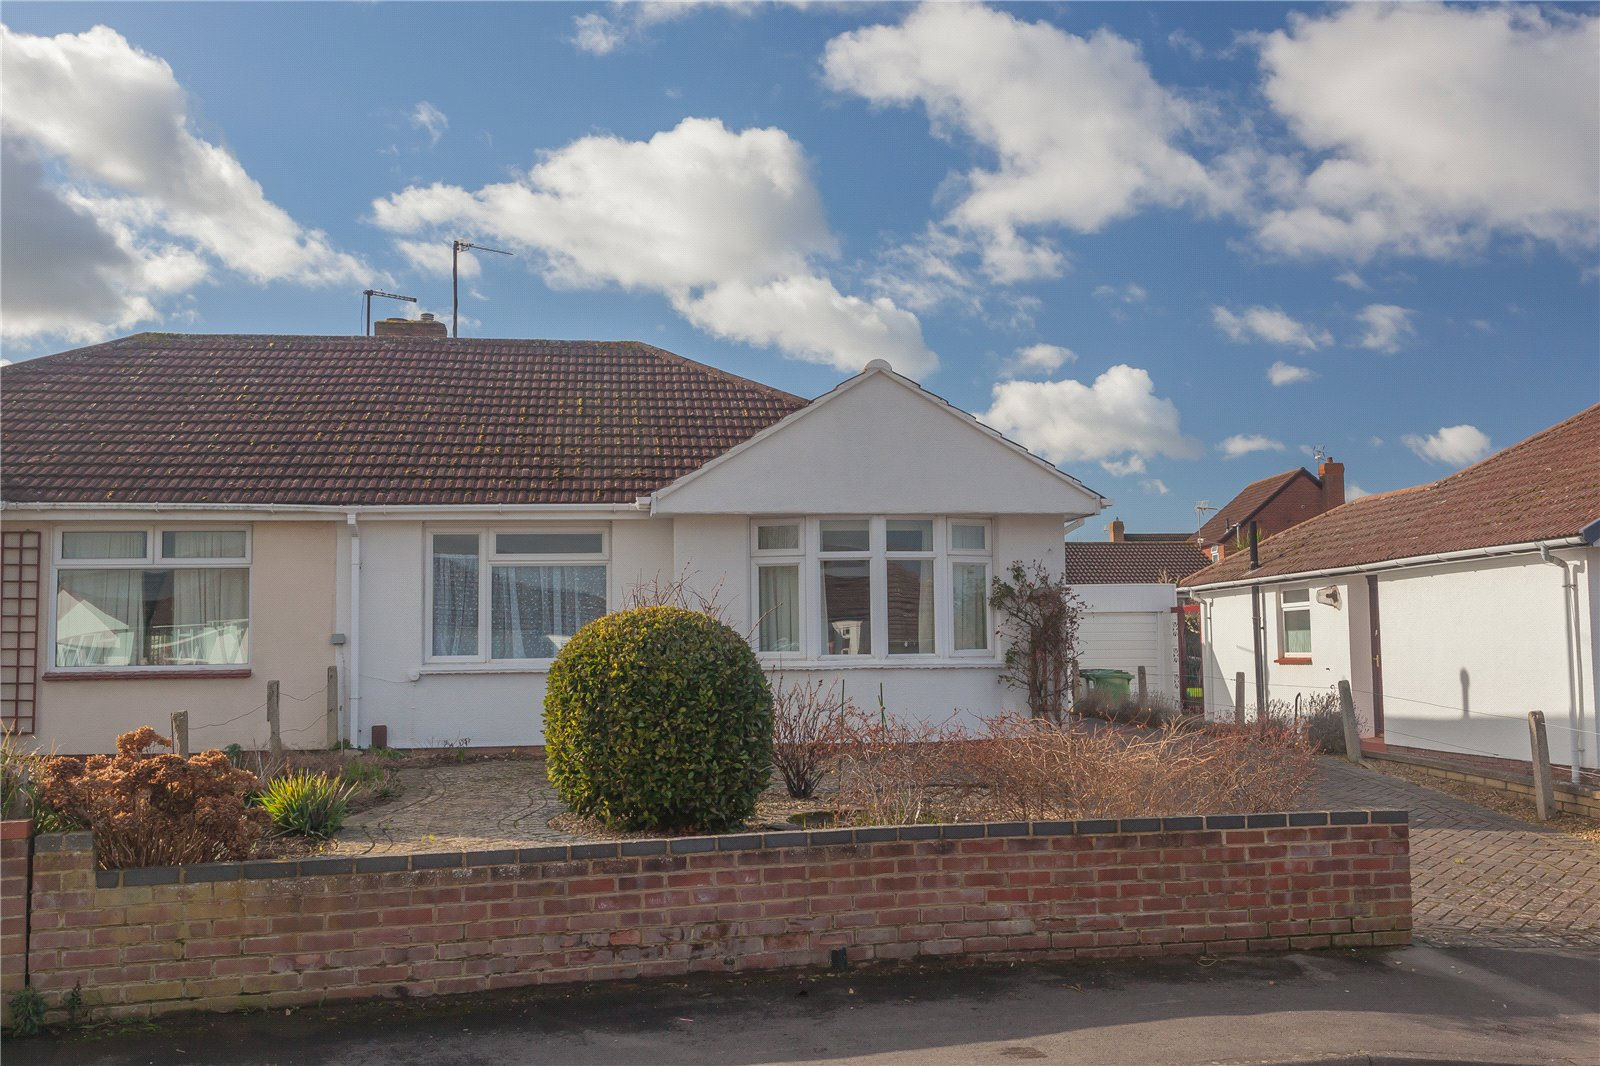 2 Bedrooms Bungalow for sale in Ashwood Way Hucclecote Gloucester GL3